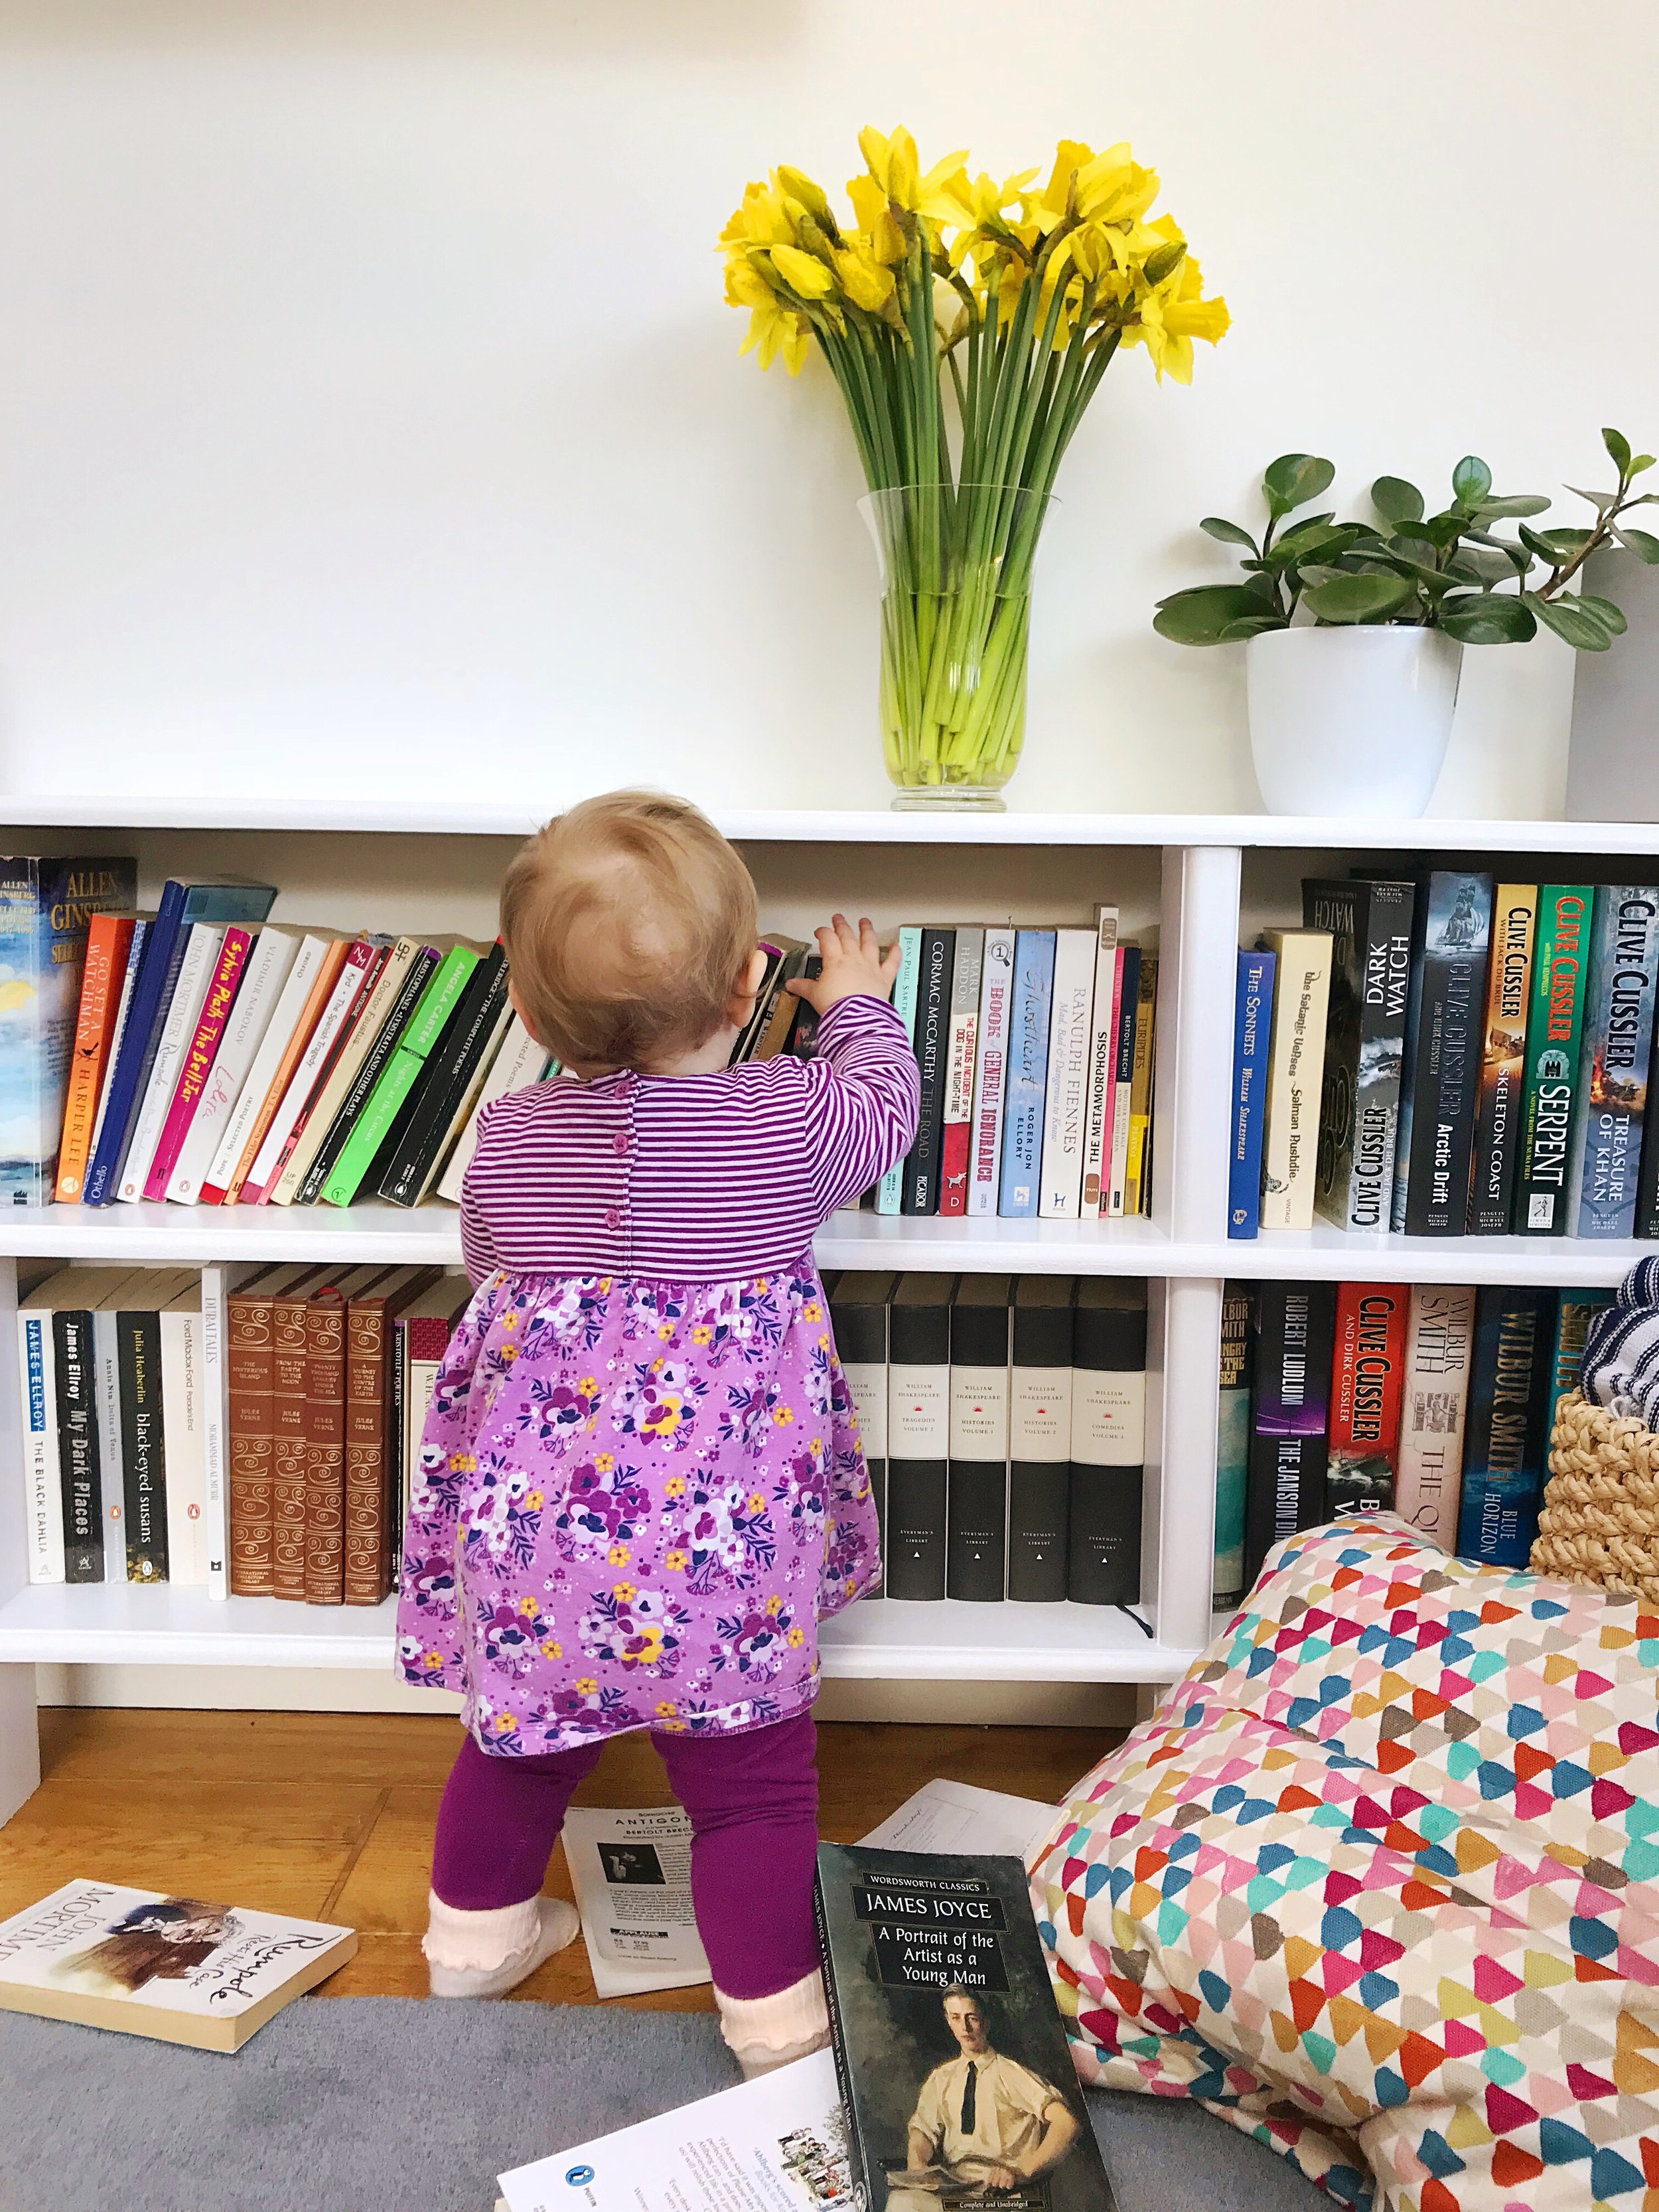 Little person and spring daffs (she merrily emptied most of the books but was happy the entire time).